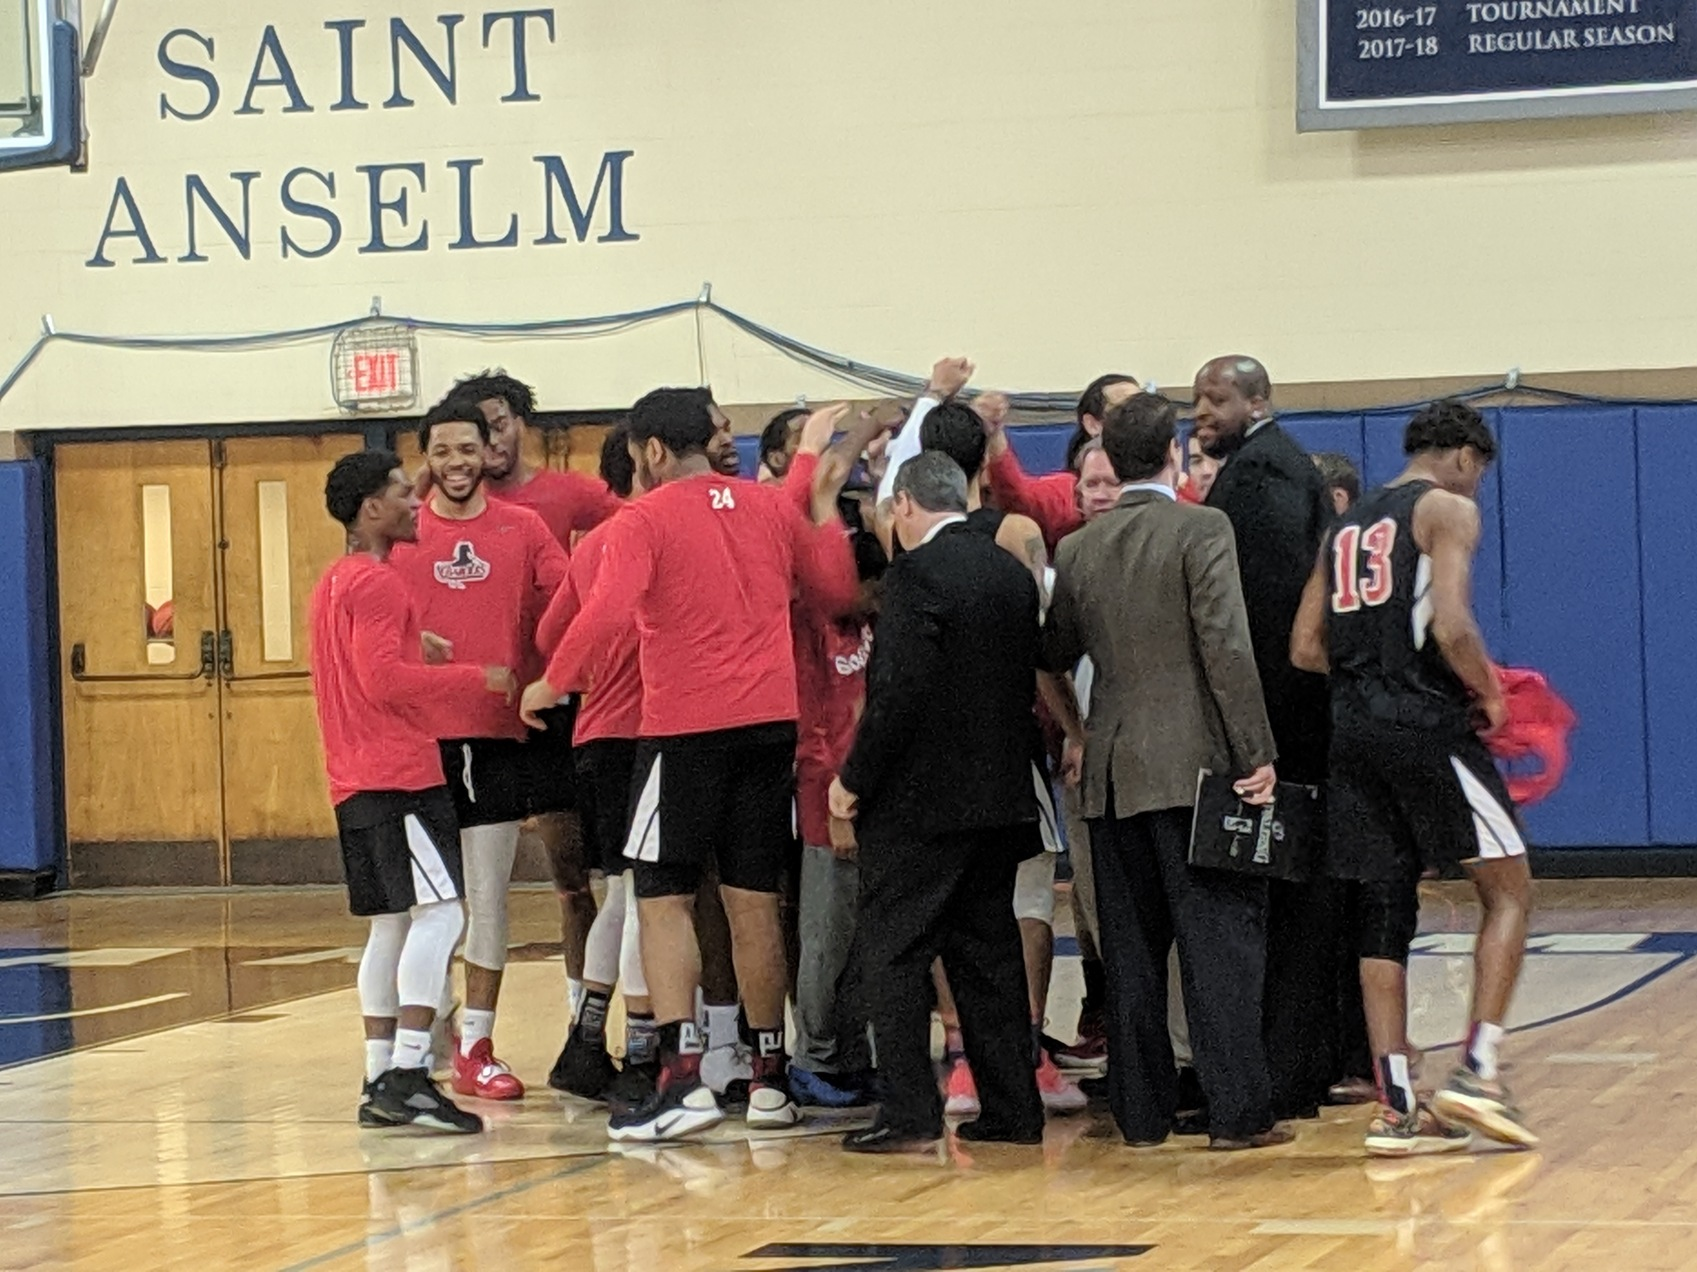 #7 DOMINICAN LOSE HEARTBREAKER TO #6 ST. THOMAS AQUINAS IN NCAA EAST REGIONAL SEMIFINAL